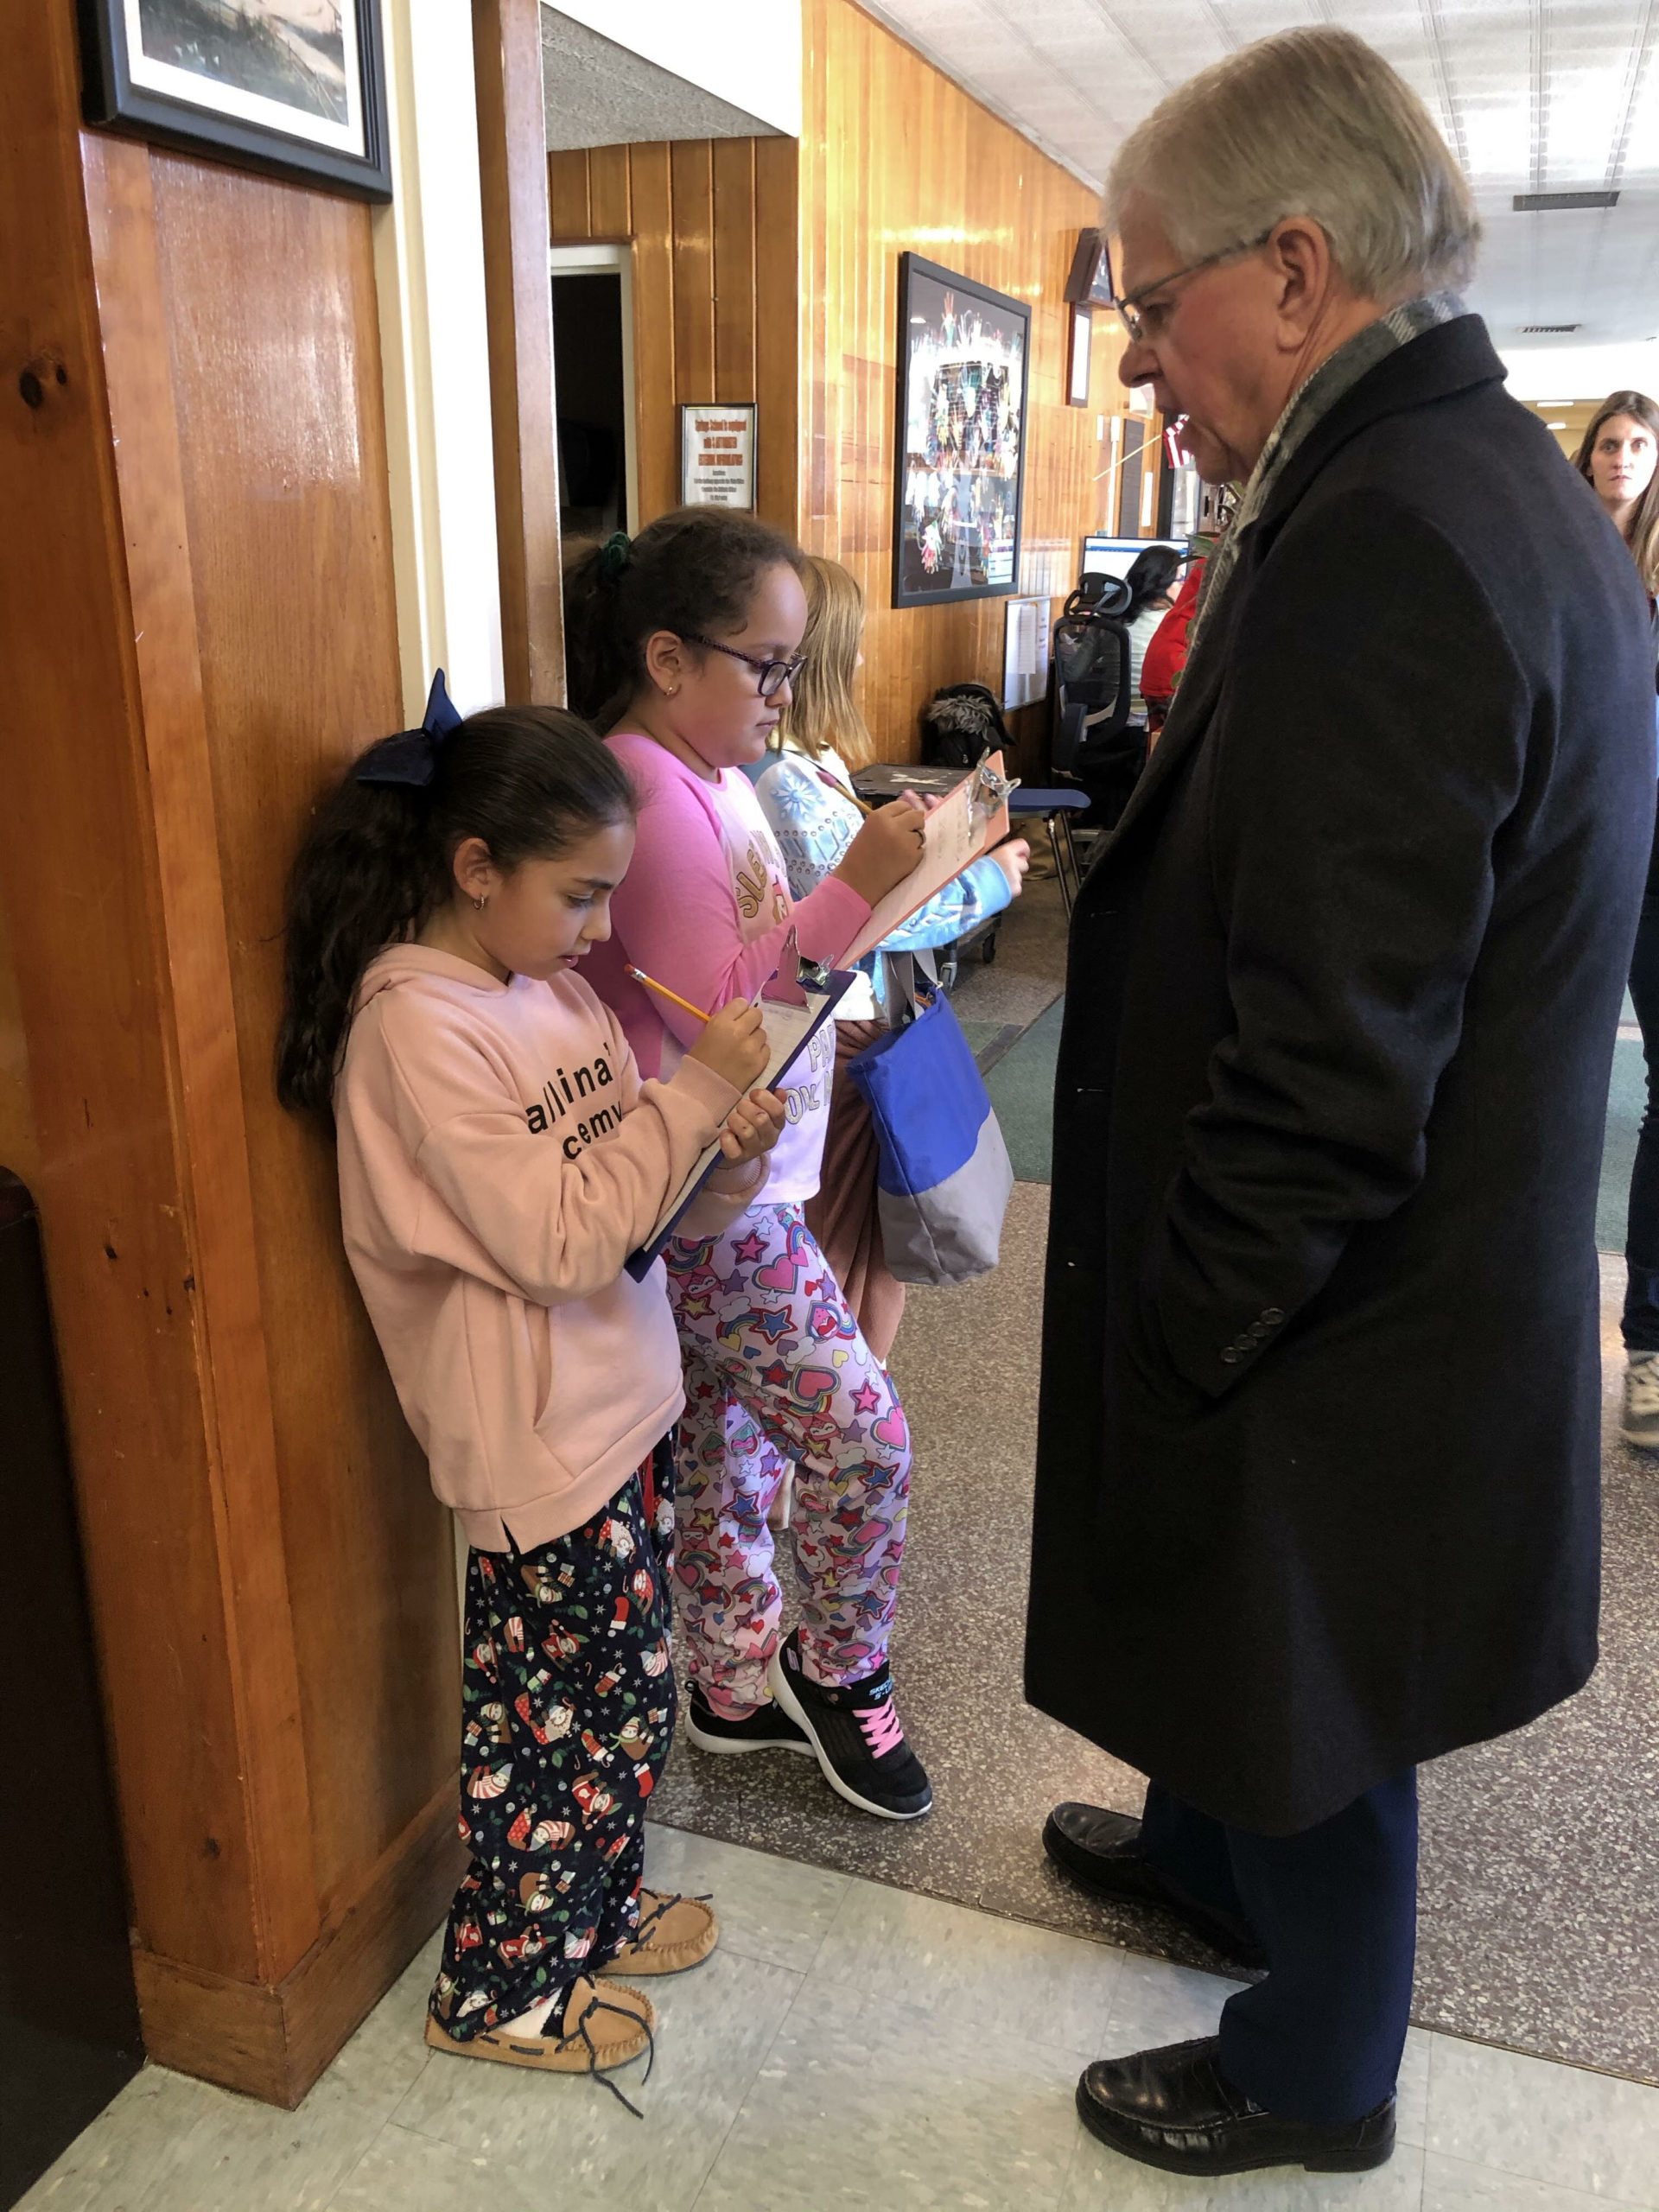 Springs School Journalism Club students interviewed Assemblyman Fred Thiele about a $50,000 grant the school recently received for its clean water initiatives.